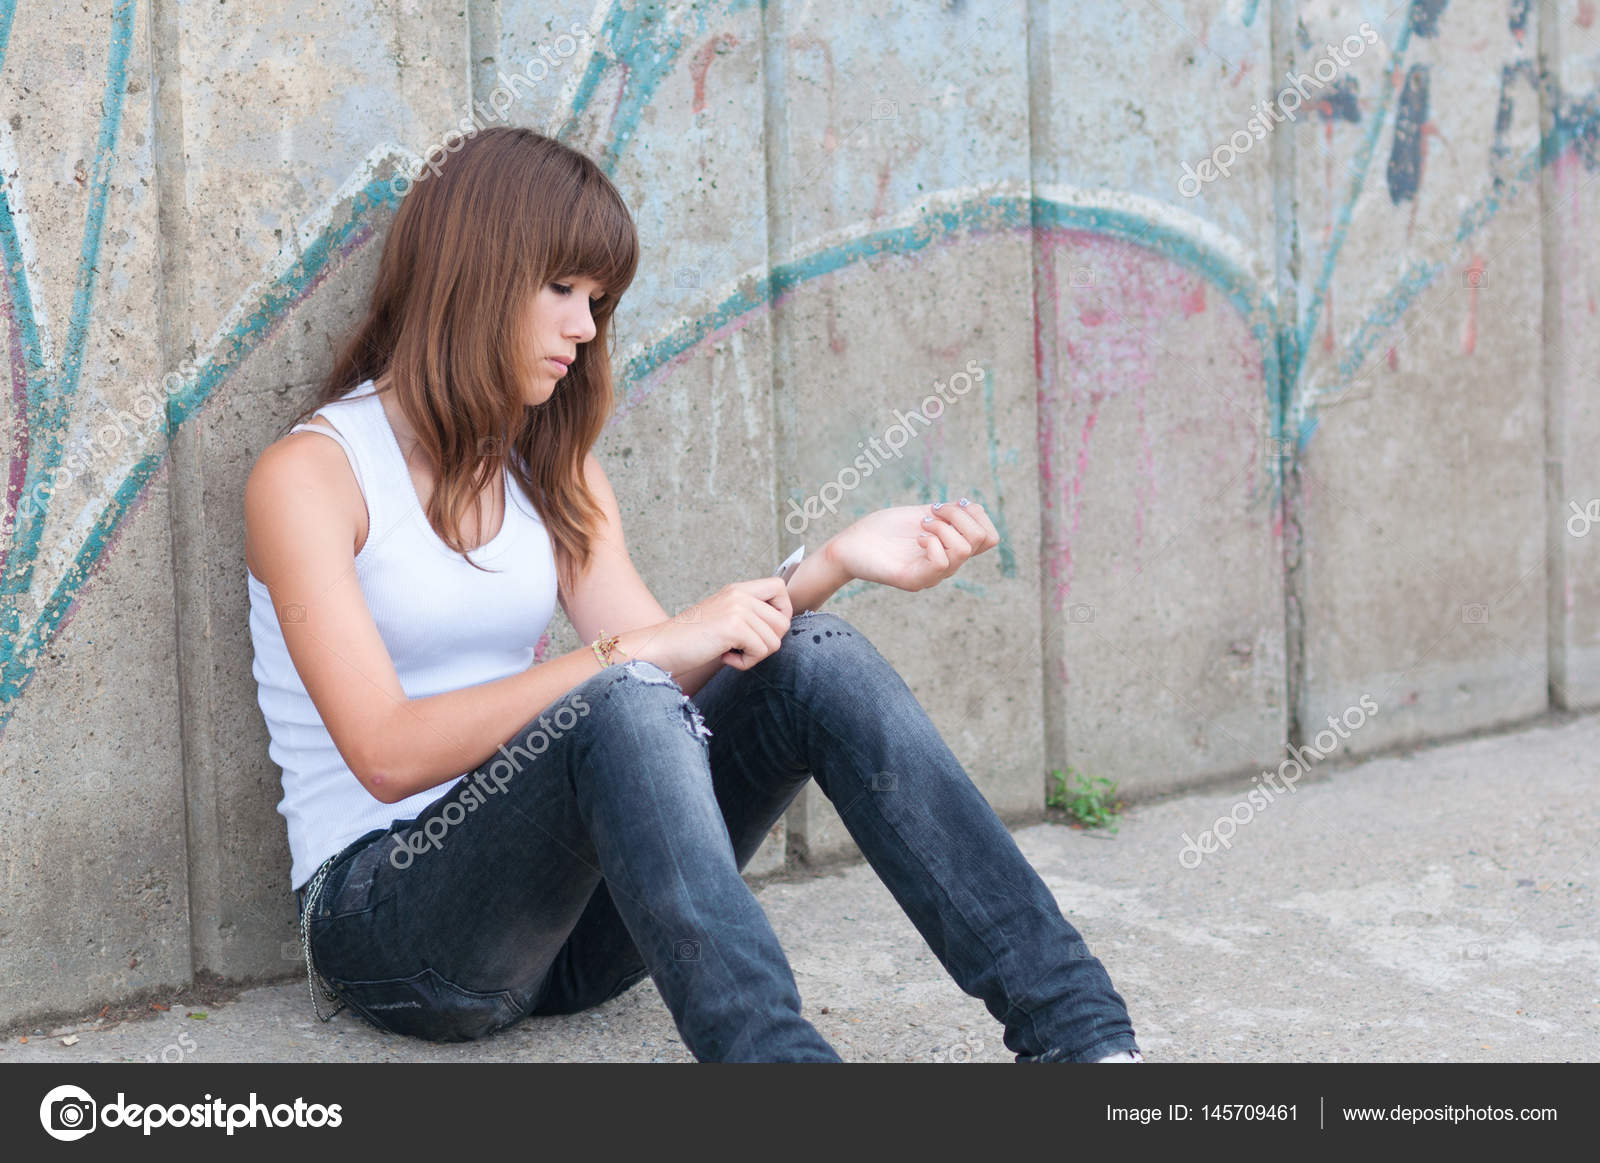 depression in teenage girls This brochure helps teens understand depression and how it differs from regular sadness it describes symptoms, causes, treatments, and how to get help.